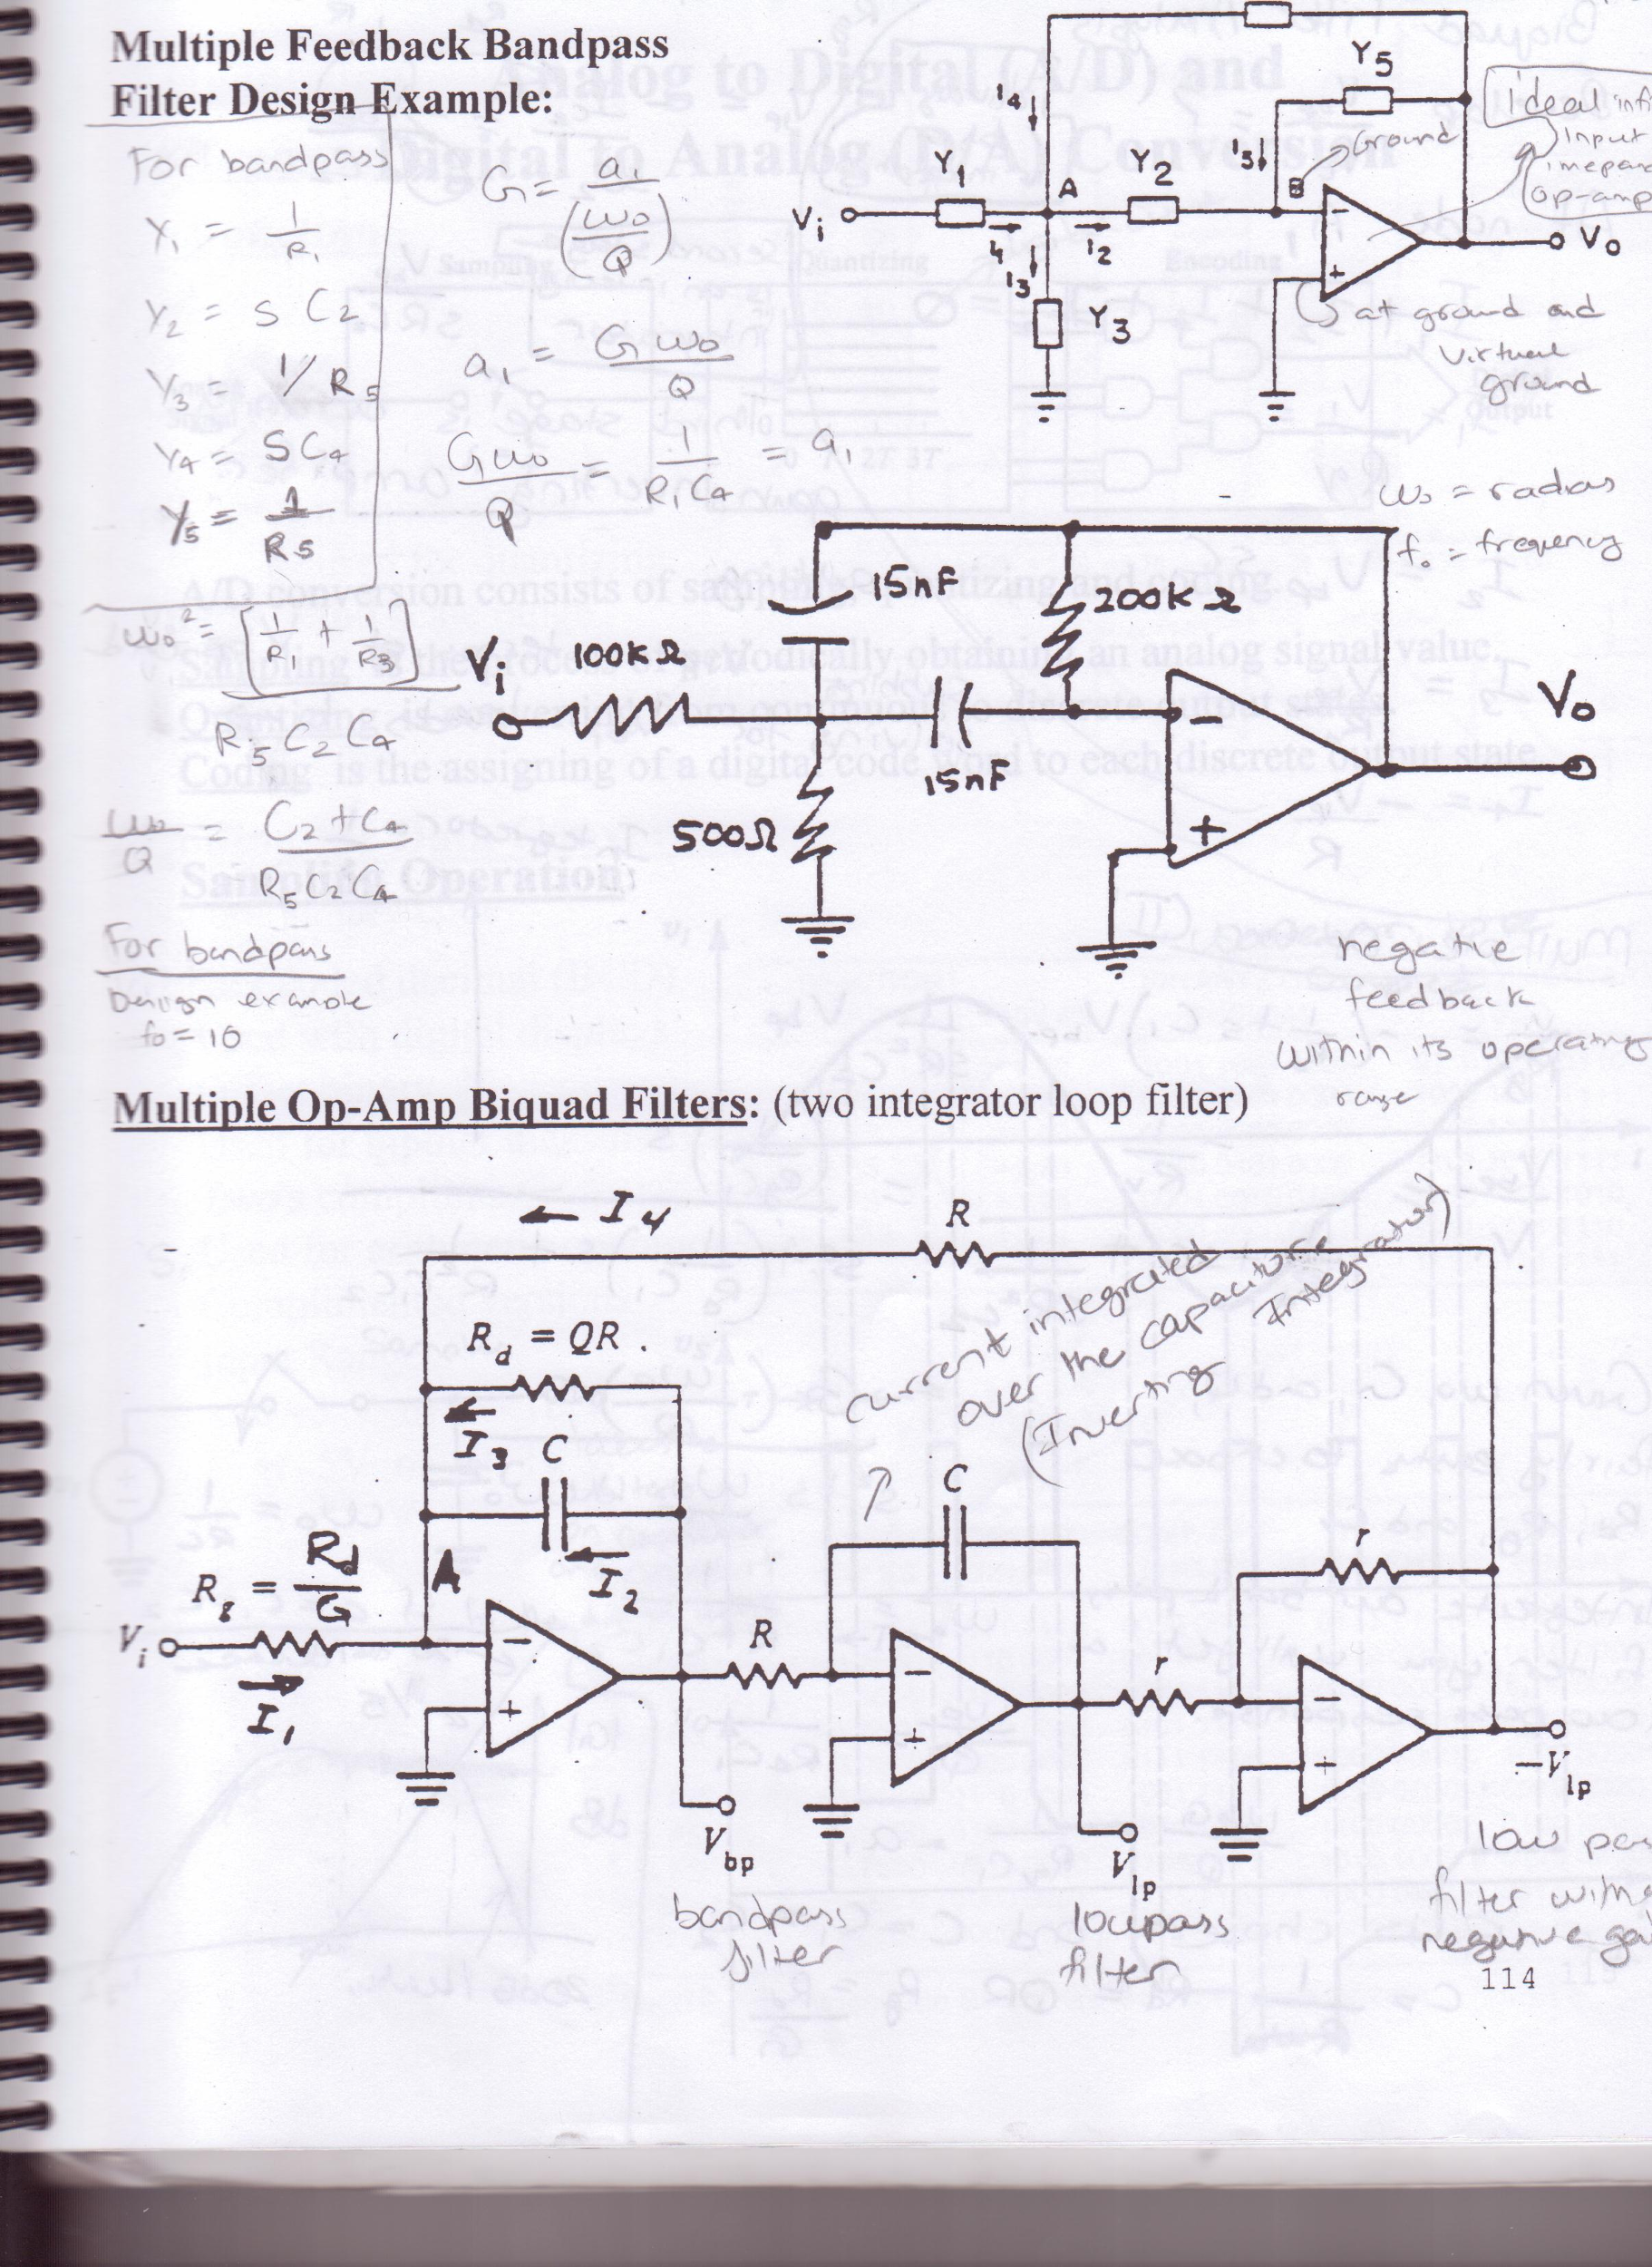 Multiple Feedback Bandpass Filter Design Example: